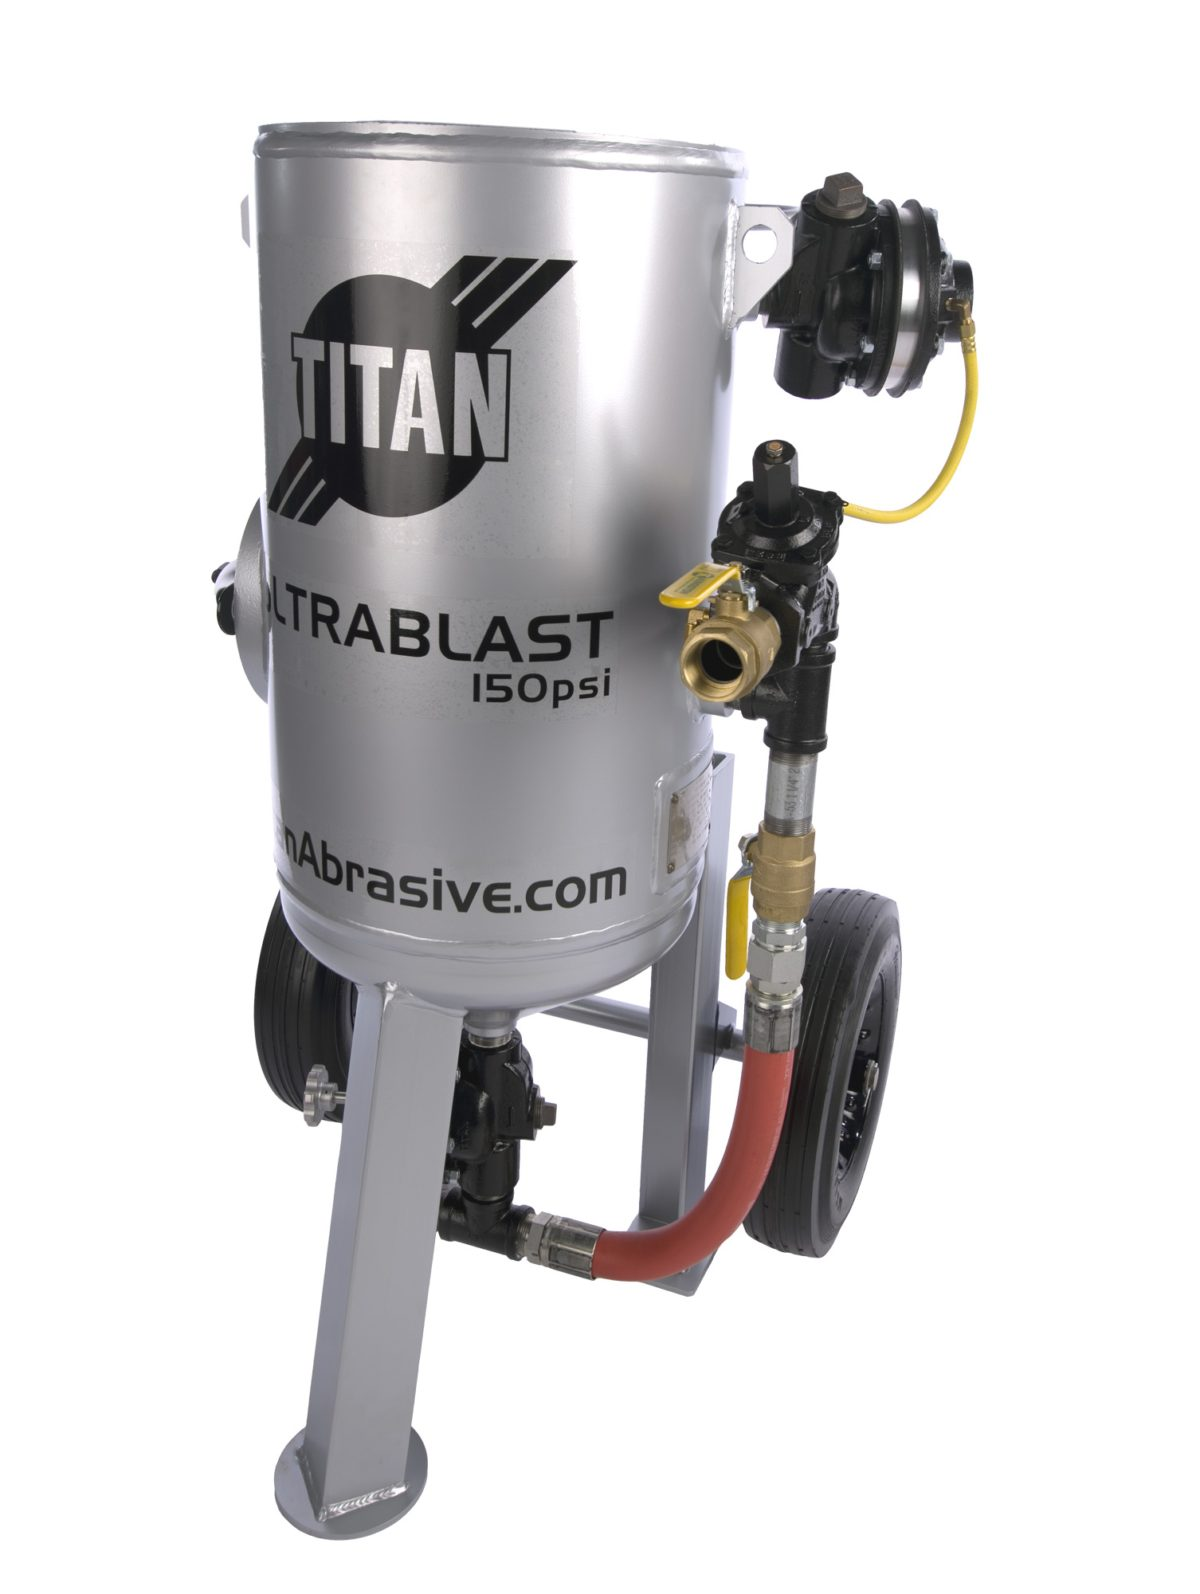 Titan U300 sandblast machine